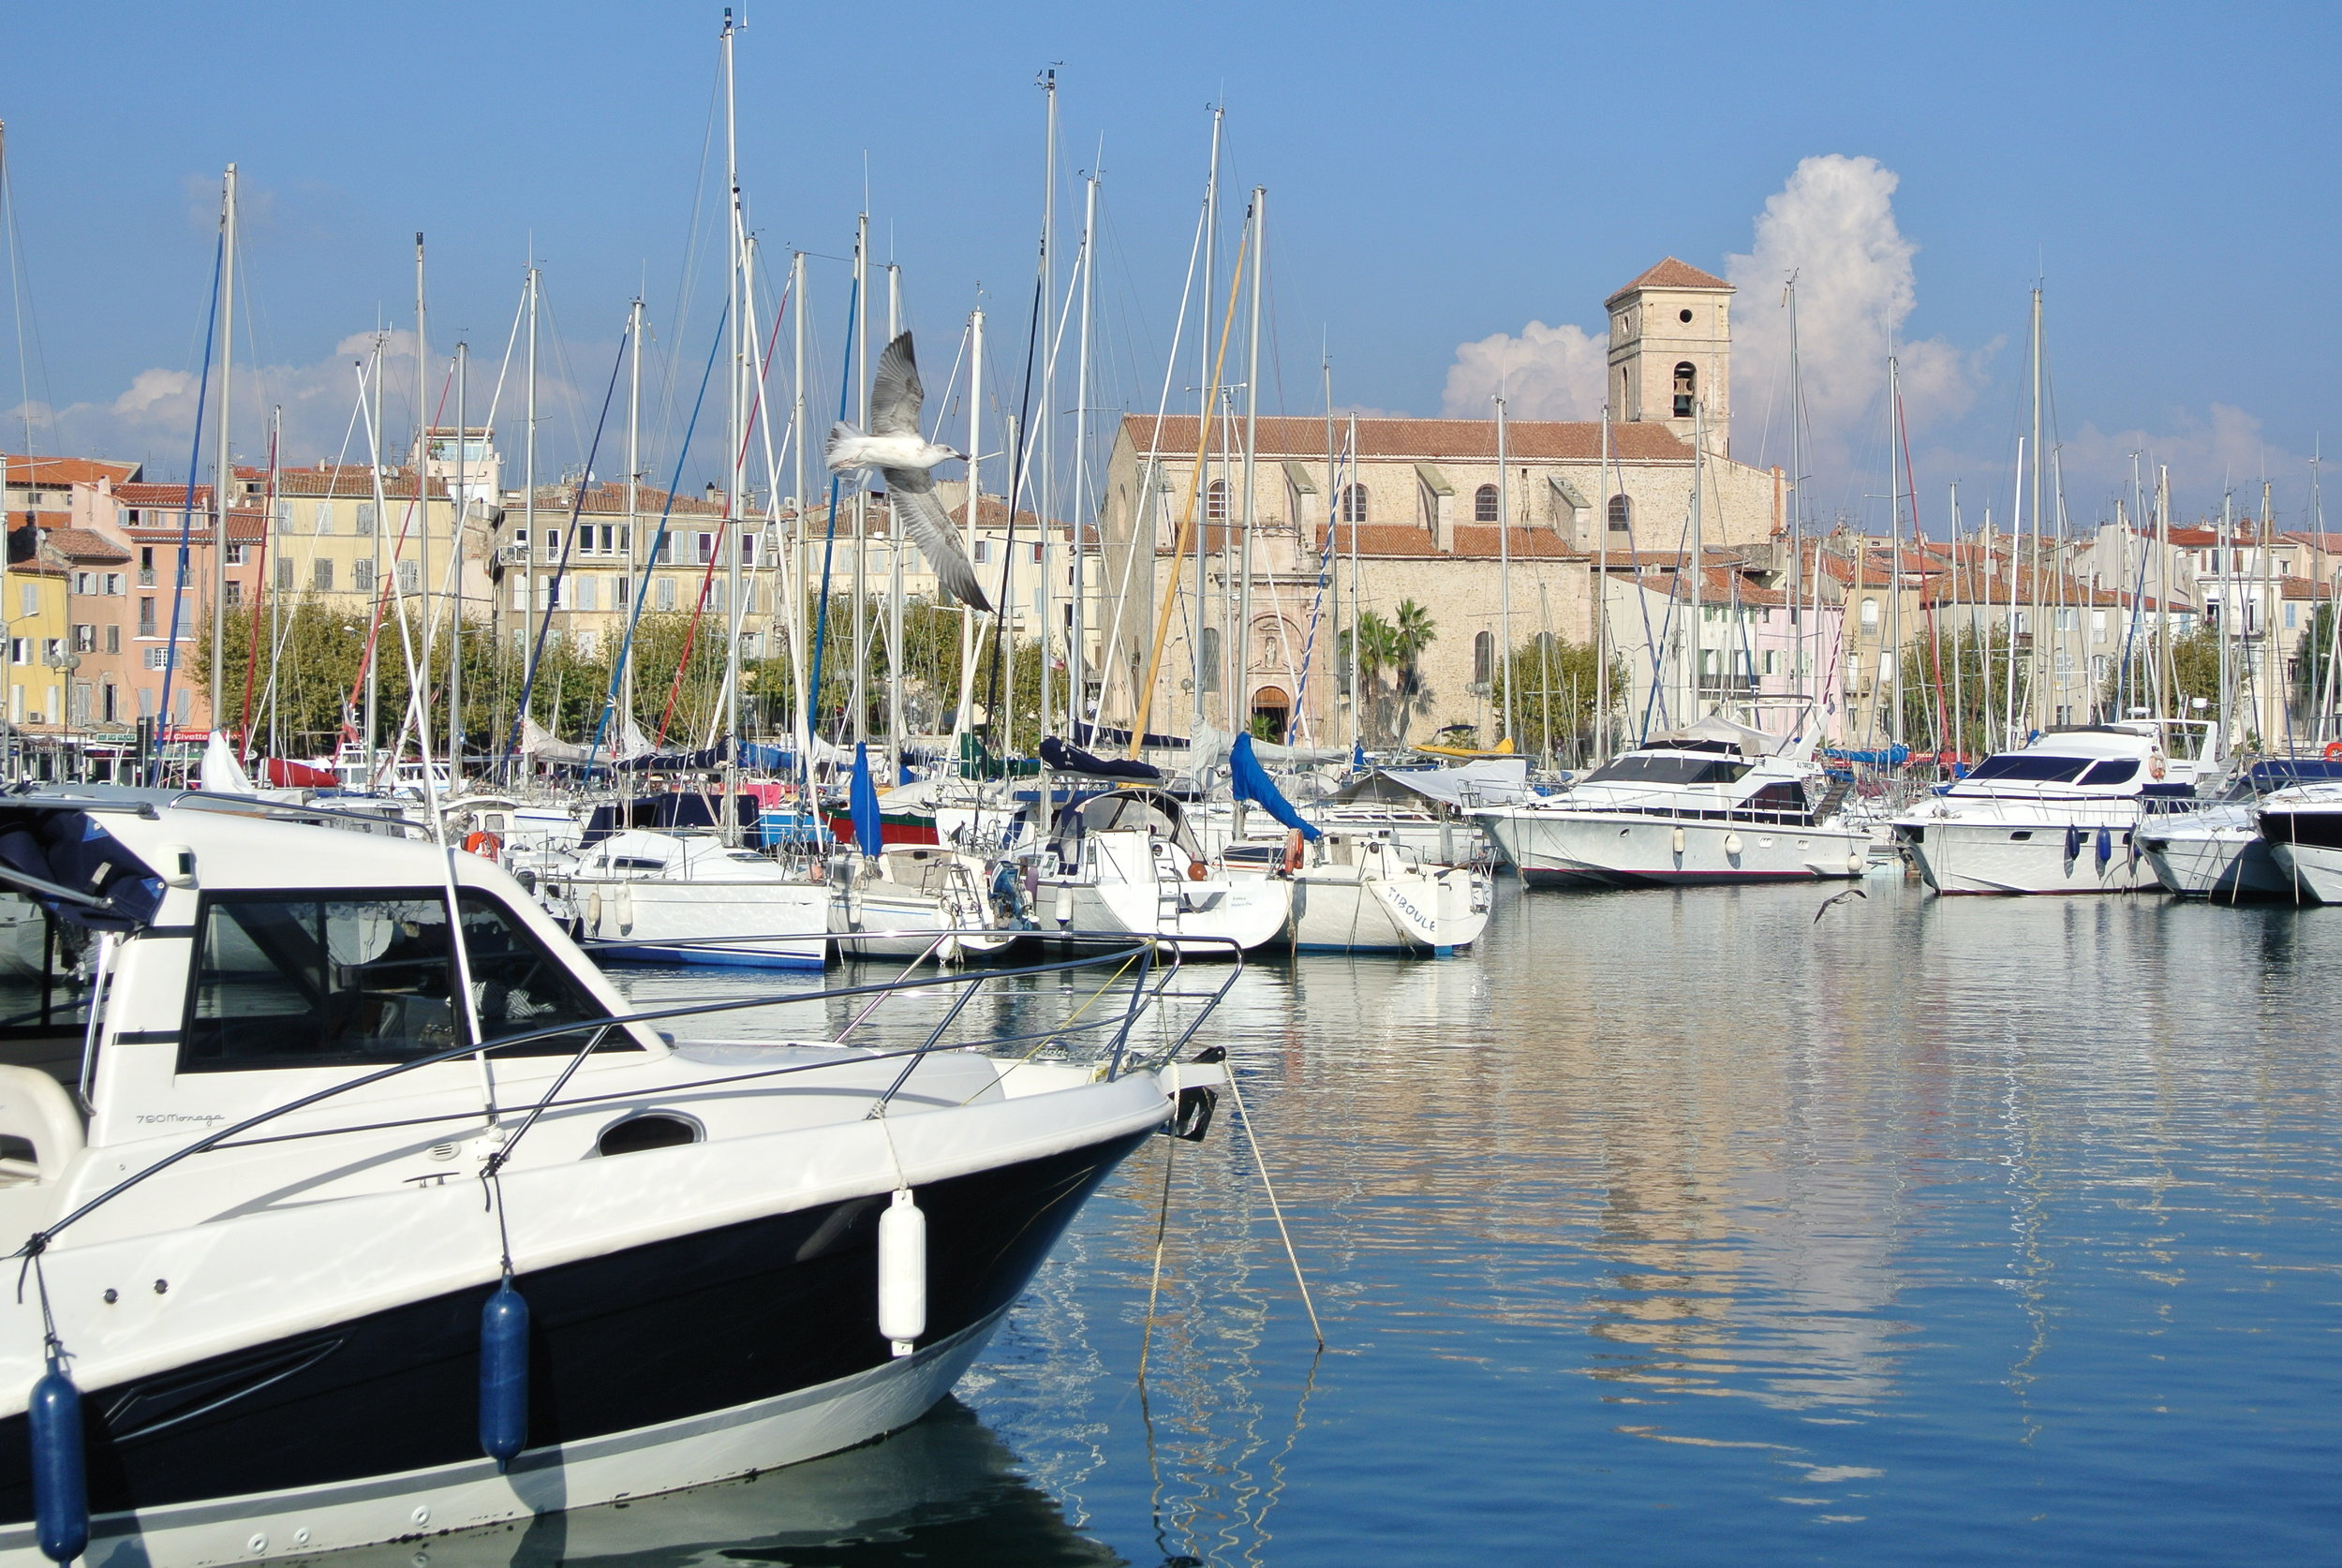 Yachts, sailboats and seagulls in a postcard-perfect setting